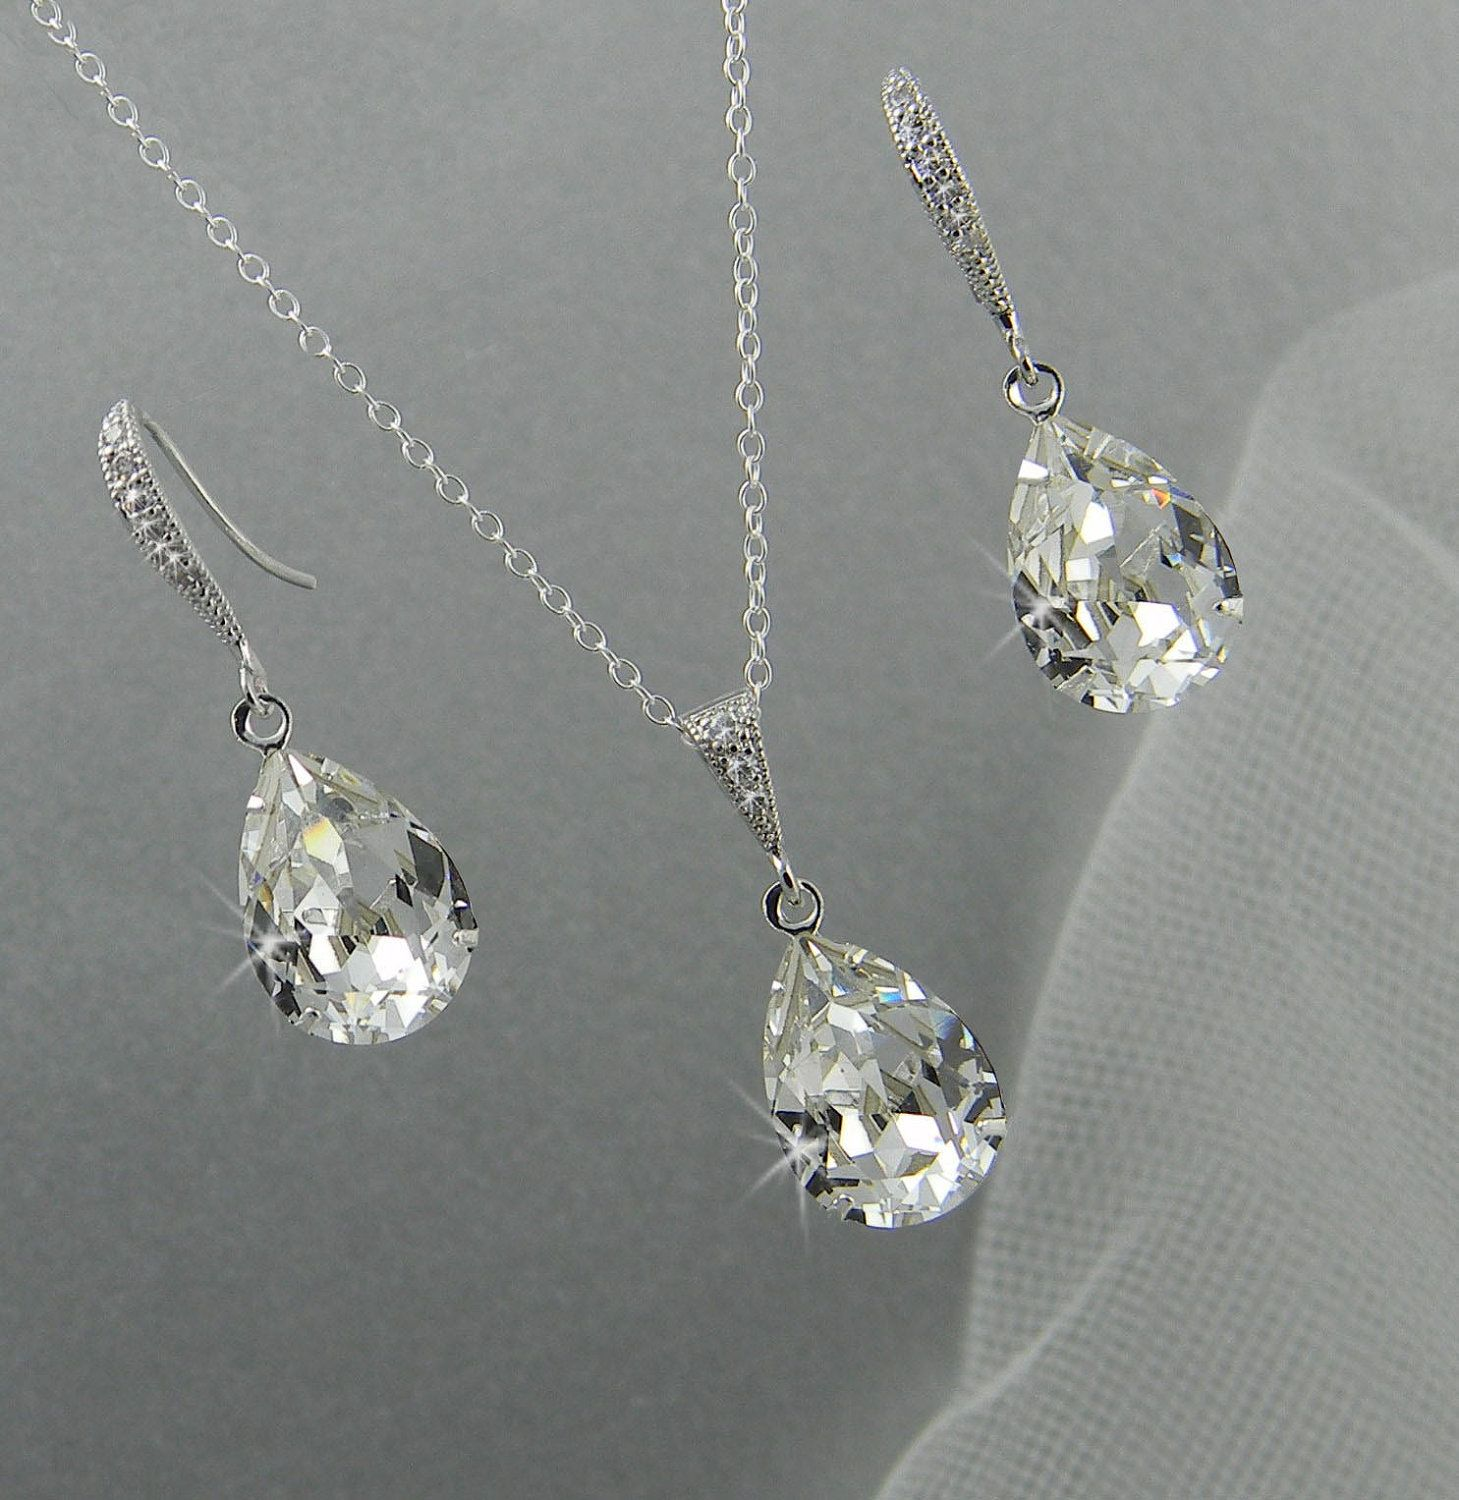 Bridal Jewelry Set, Crystal Pendant Earrings Necklace